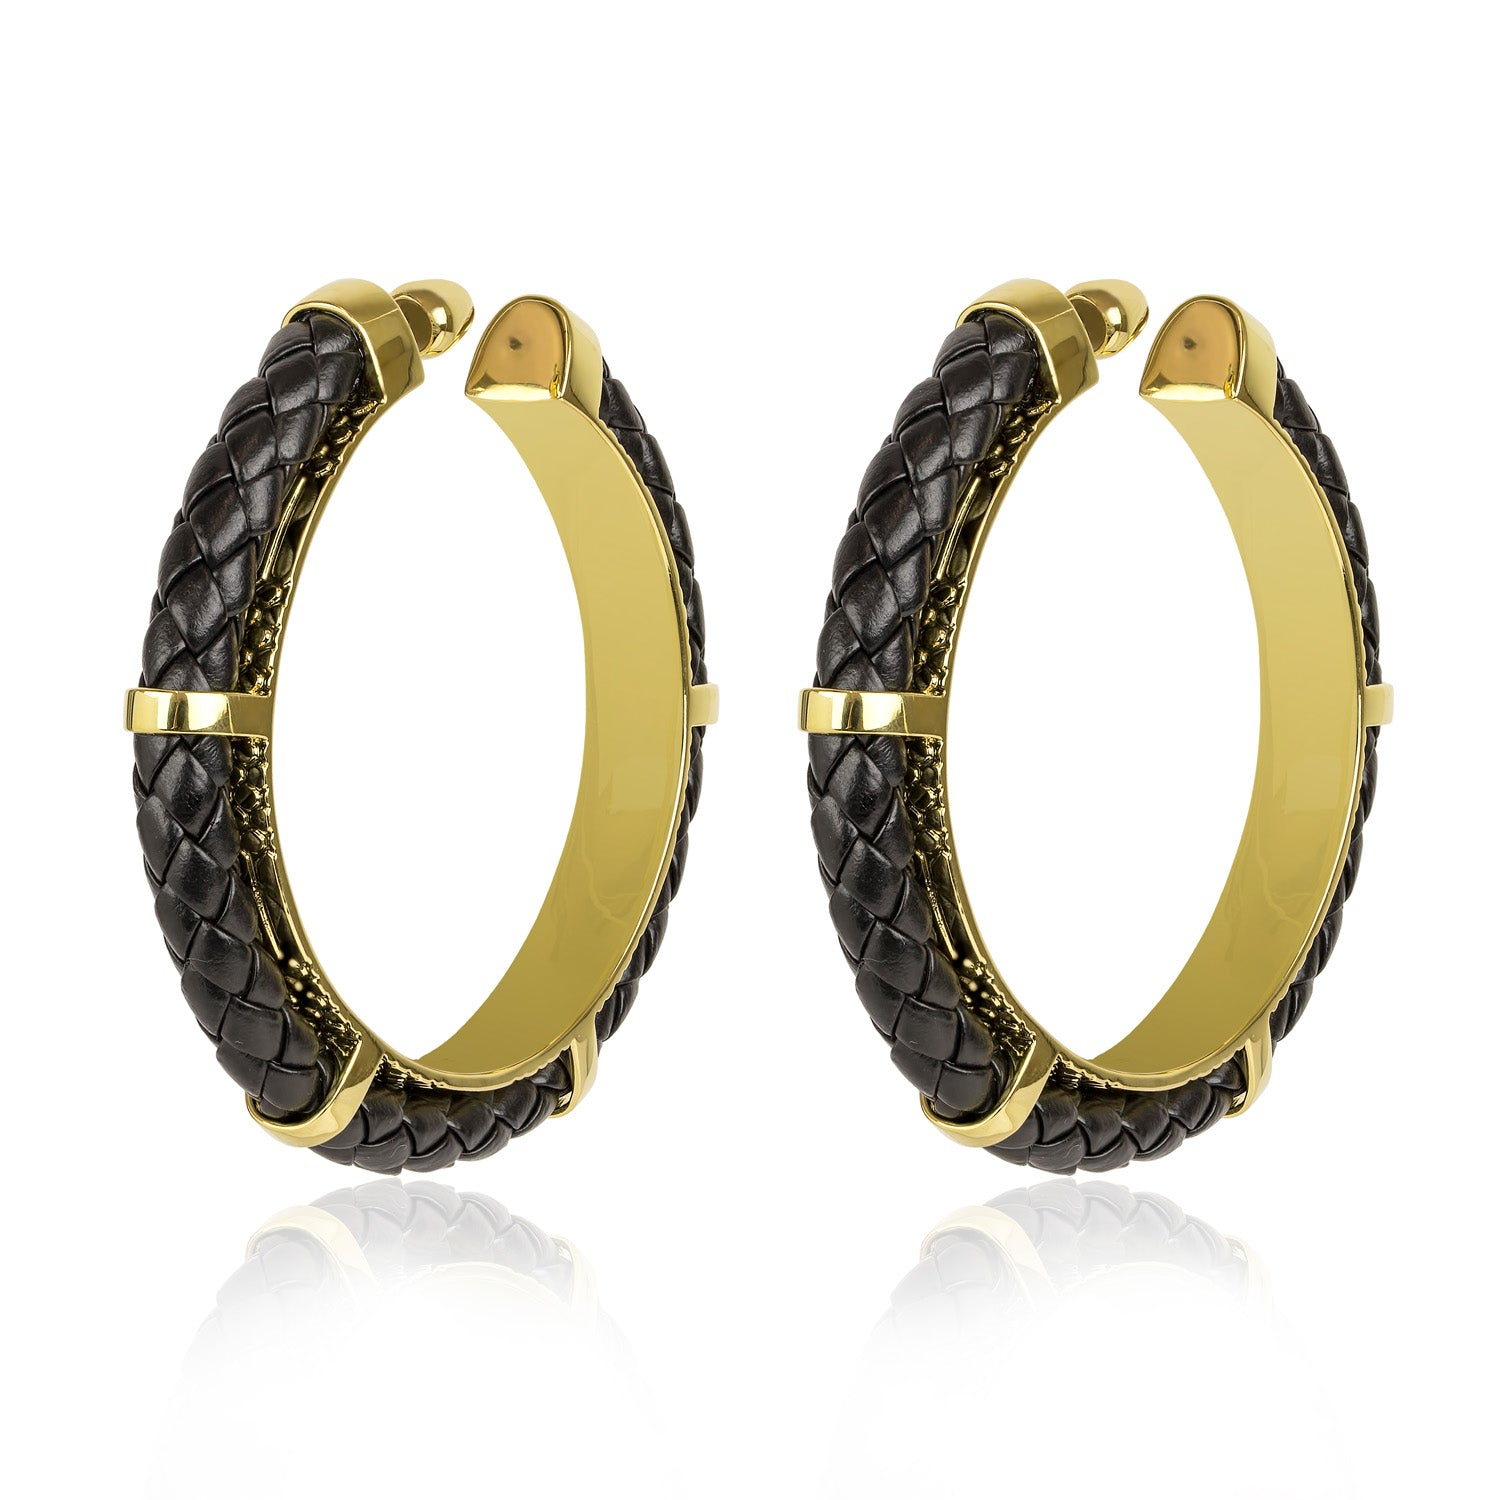 SERPENTINE HOOP EARRINGS